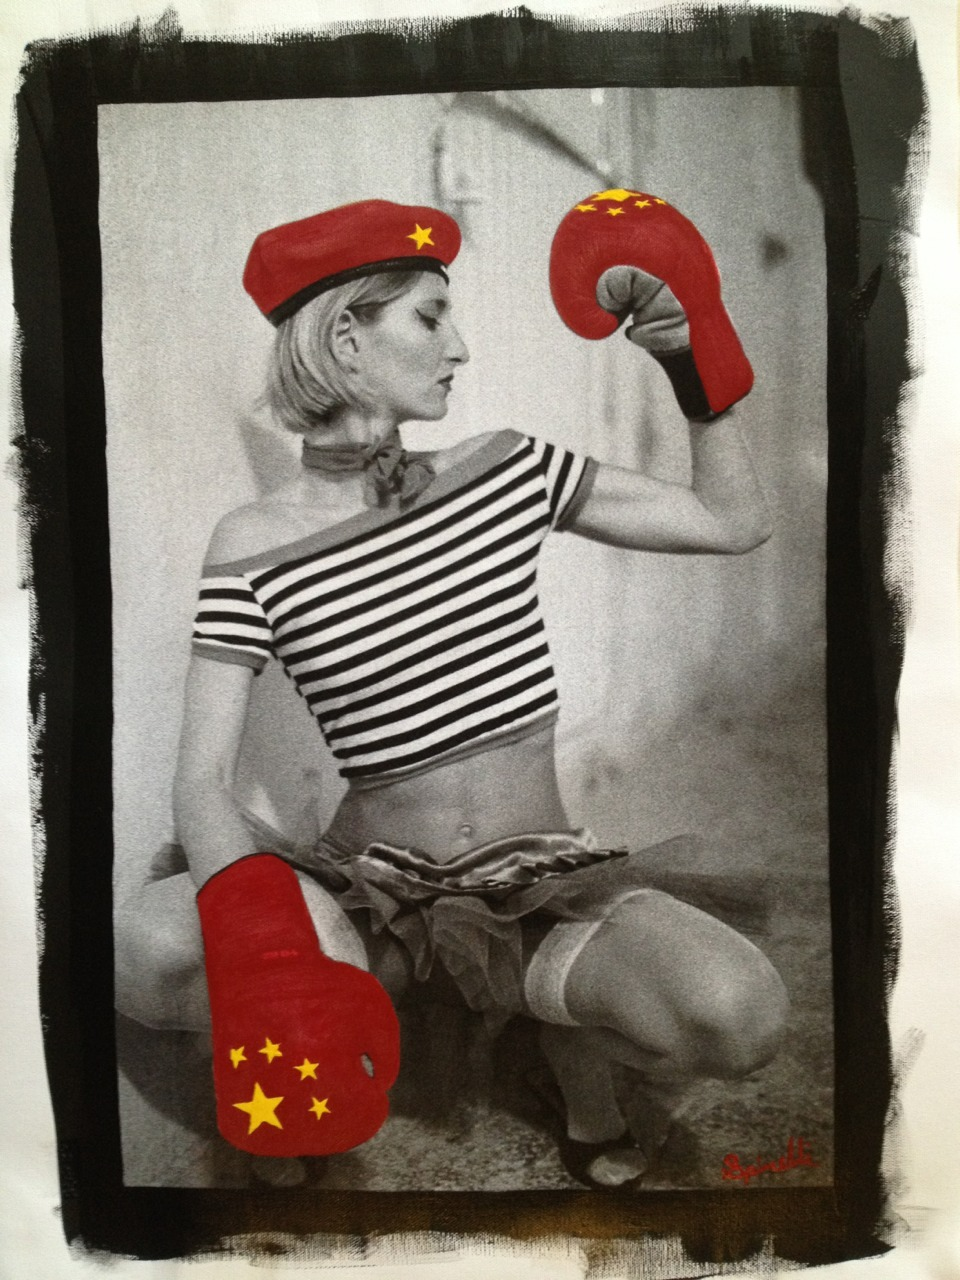 Boxeador de China! 31x45cm. New installation in The SPiN Galleries in Shanghai. Photocanvas mixed with Acrylic. Original photo shot with Kodak Film tmax 3200 iso. ©Victor Spinelli 2001 Ibiza, Spain.